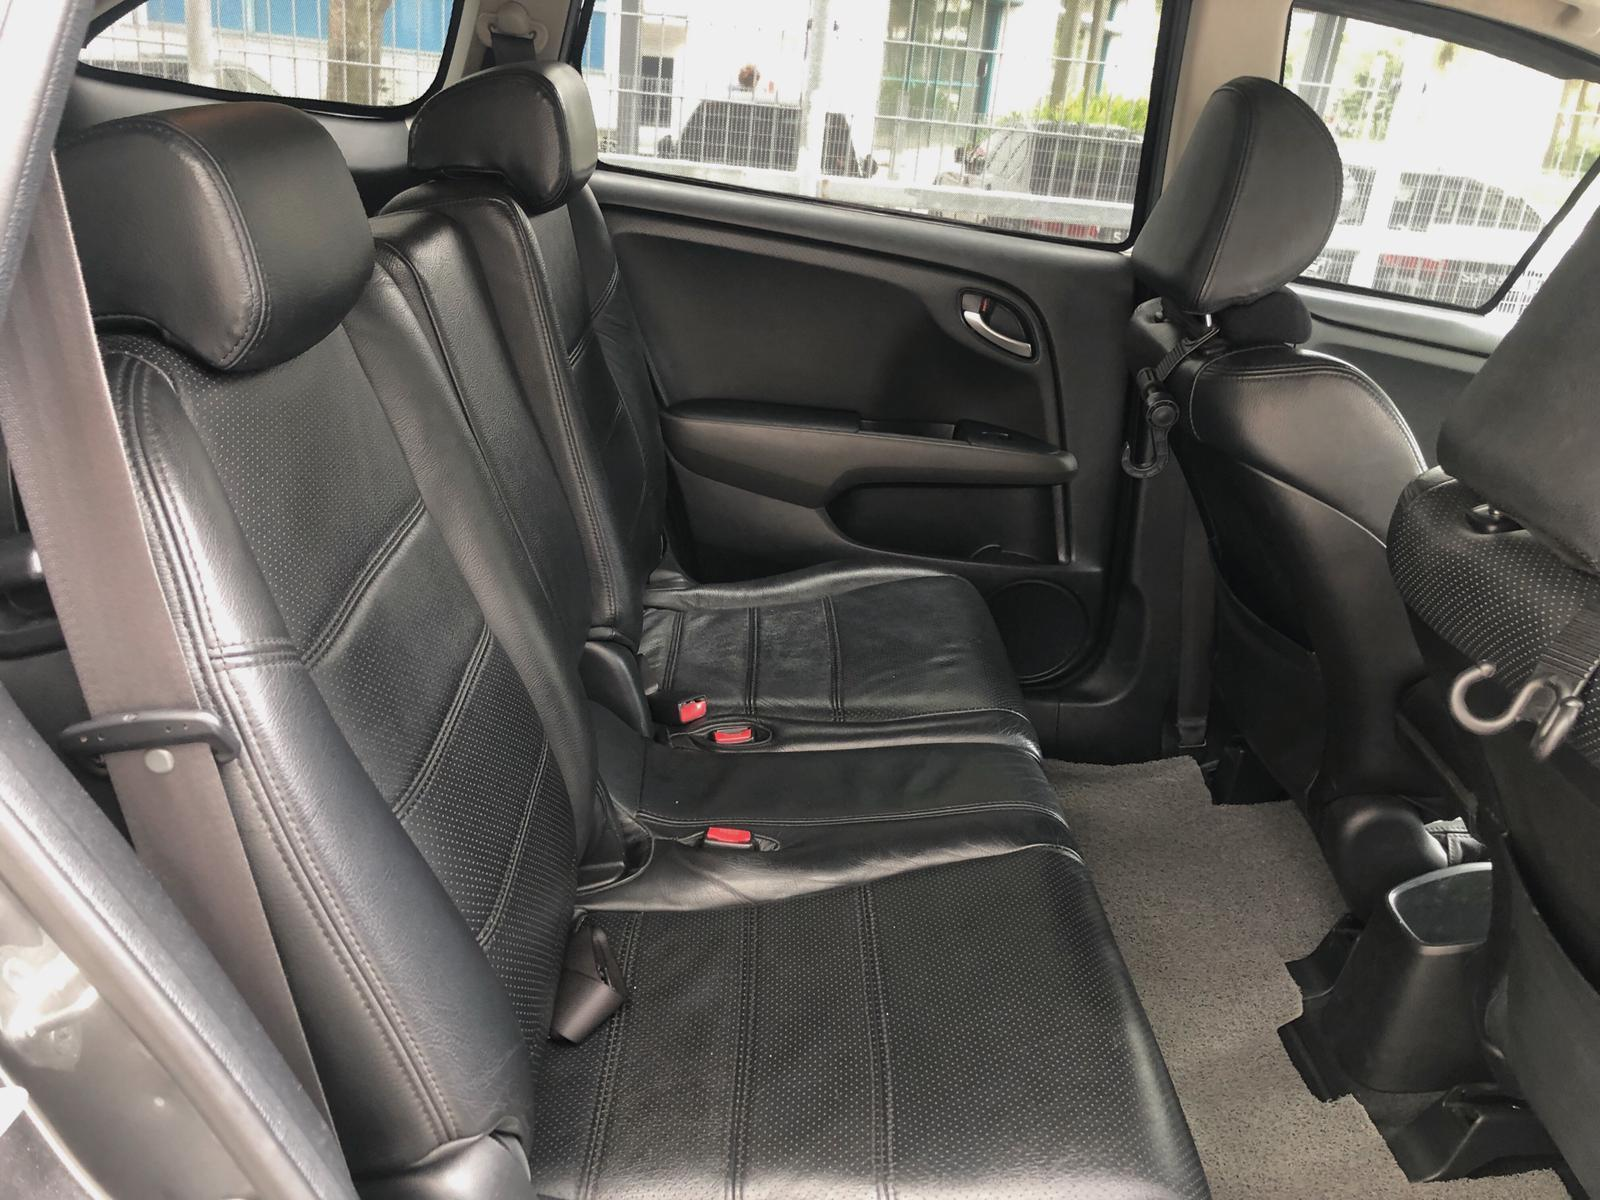 Honda Stream RENTAL CHEAPEST RENT AVAILABLE FOR Grab/Ryde/Personal USE